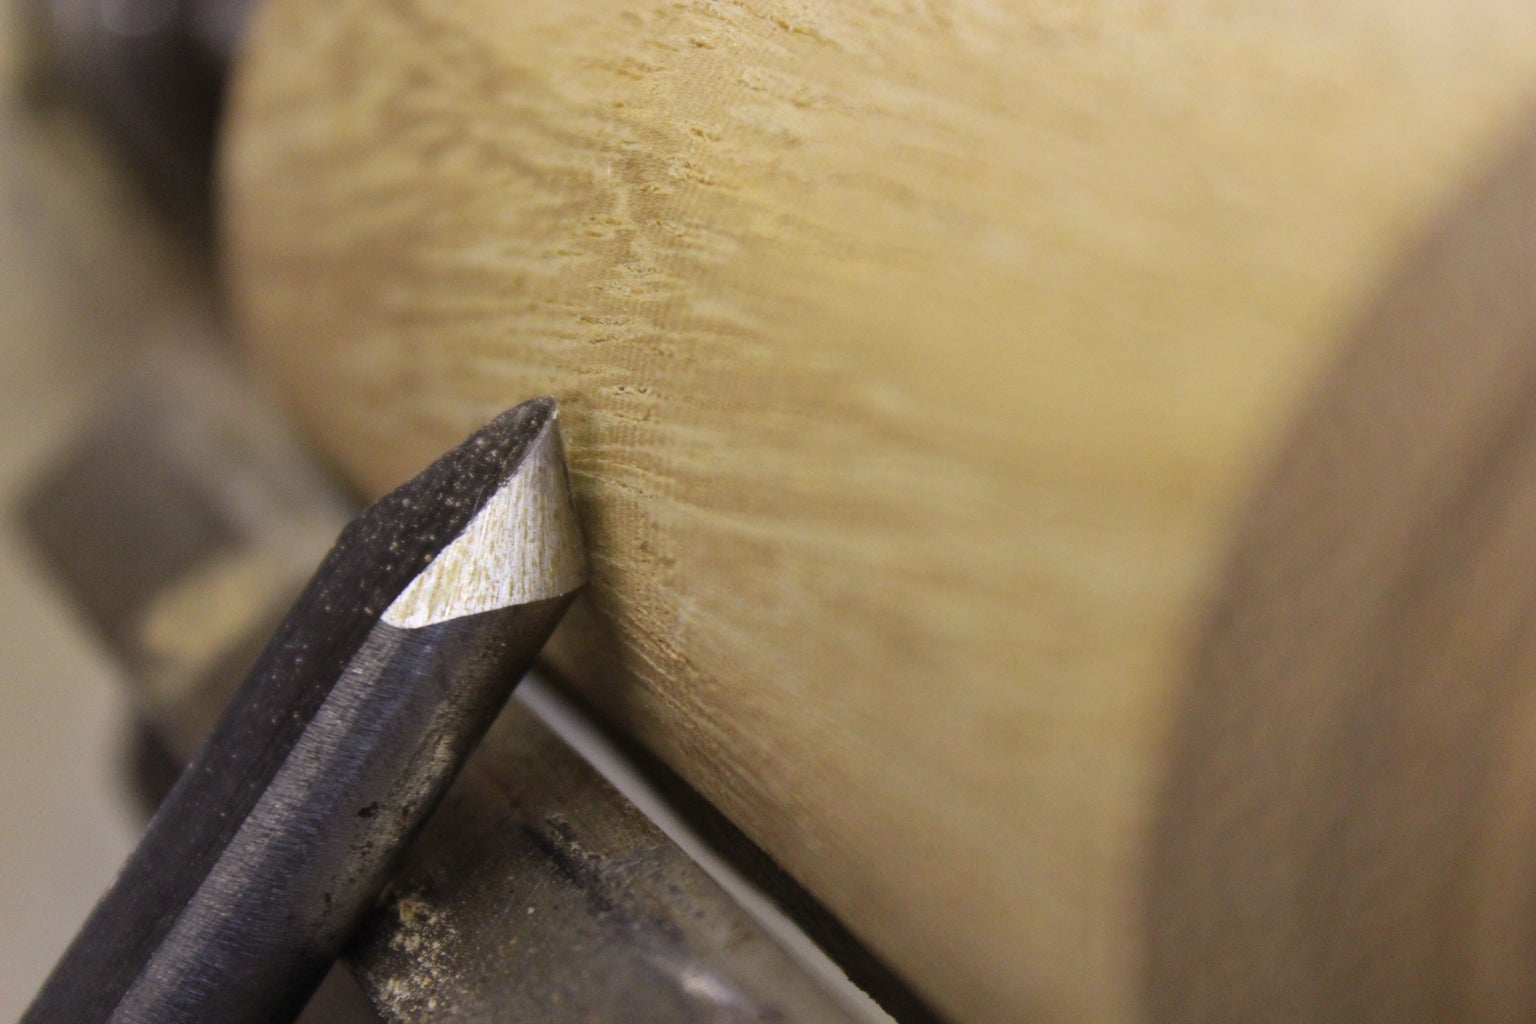 Spindle Gouge- Sometimes Known As a Shallow Fluted Gouge.